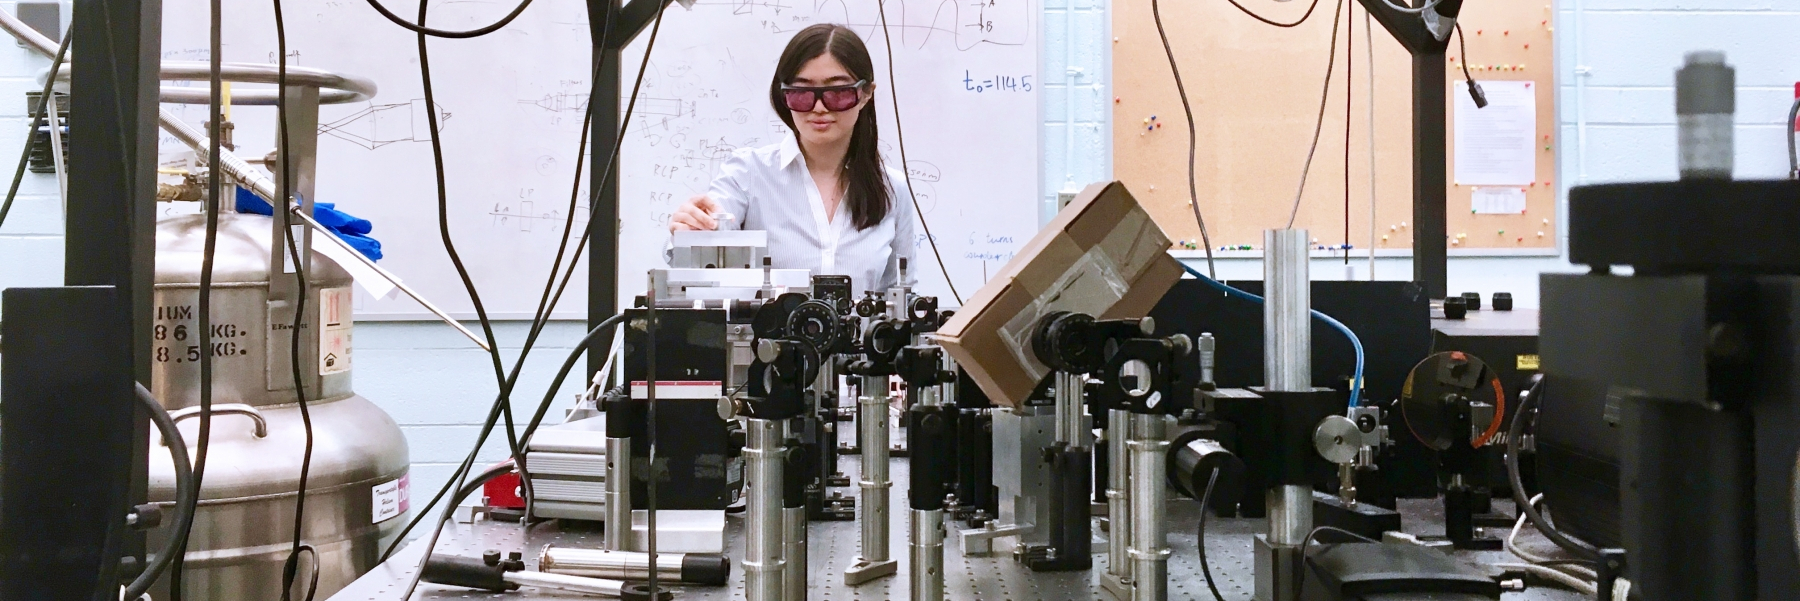 student in physics lab